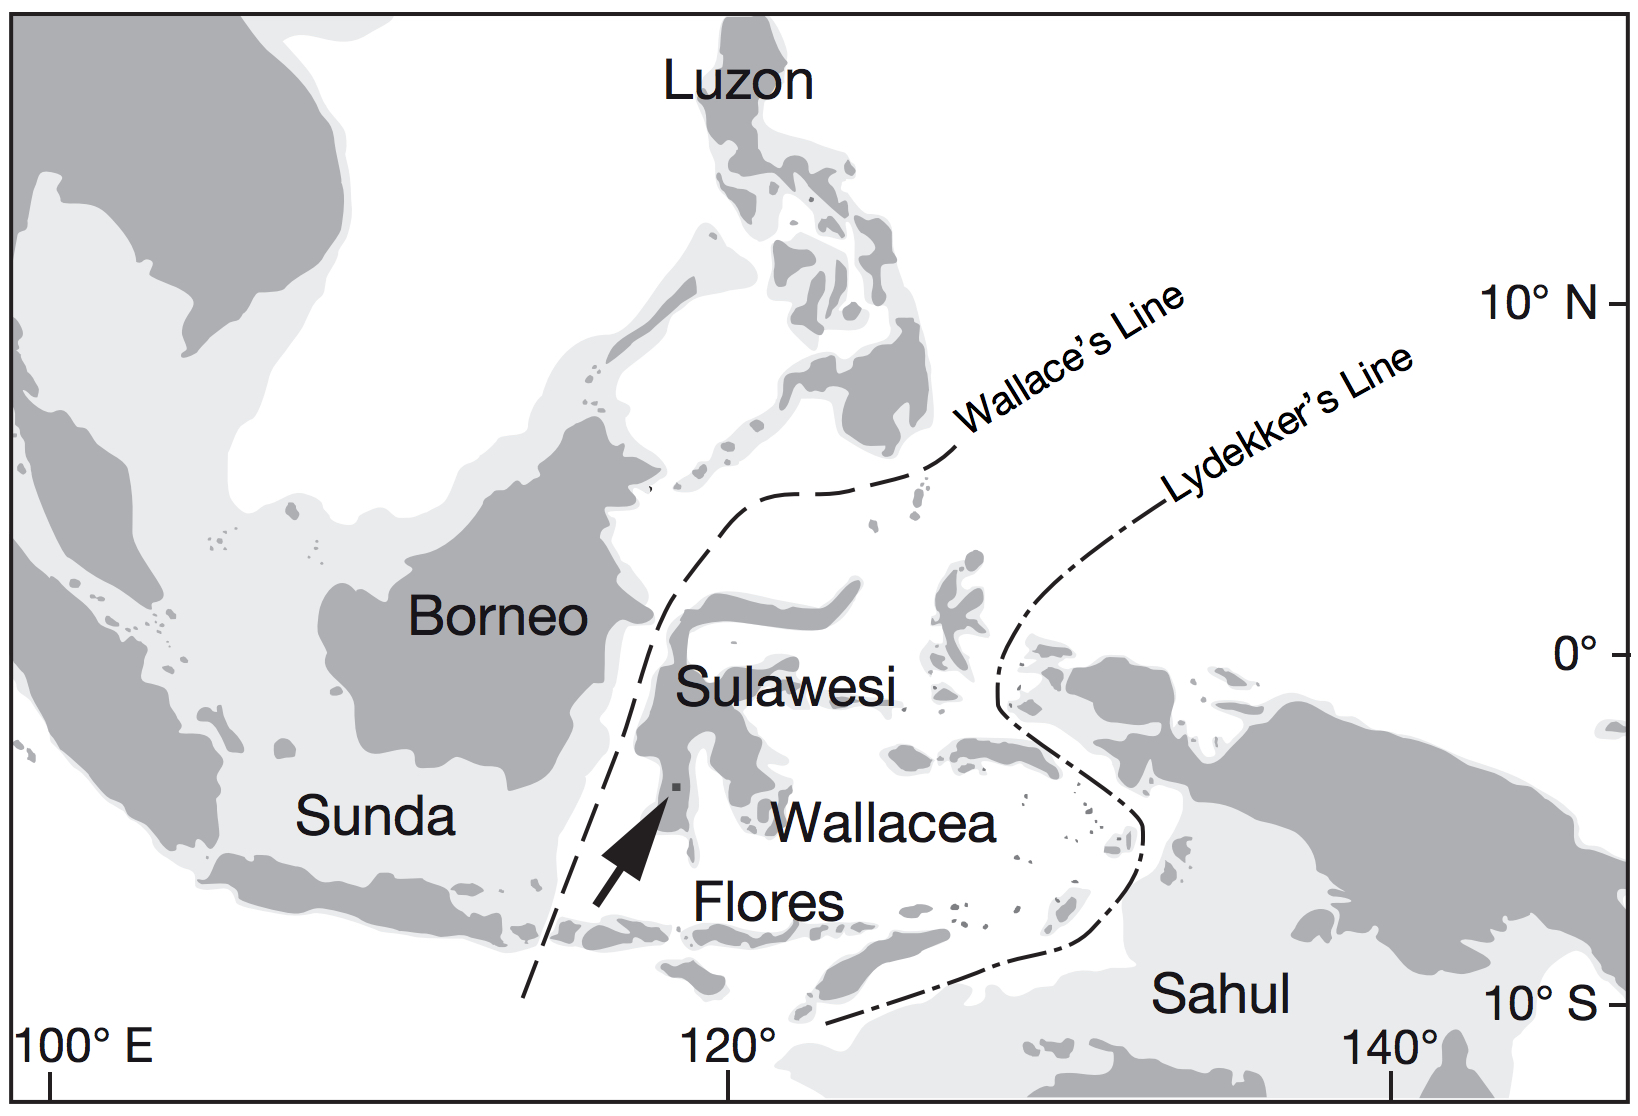 Here you can see the region where the tools were found. Exposed land during periods of low sea level (−120 m) during the Pleistocene is lightly shaded. Talepu Area indicated by an arrow.